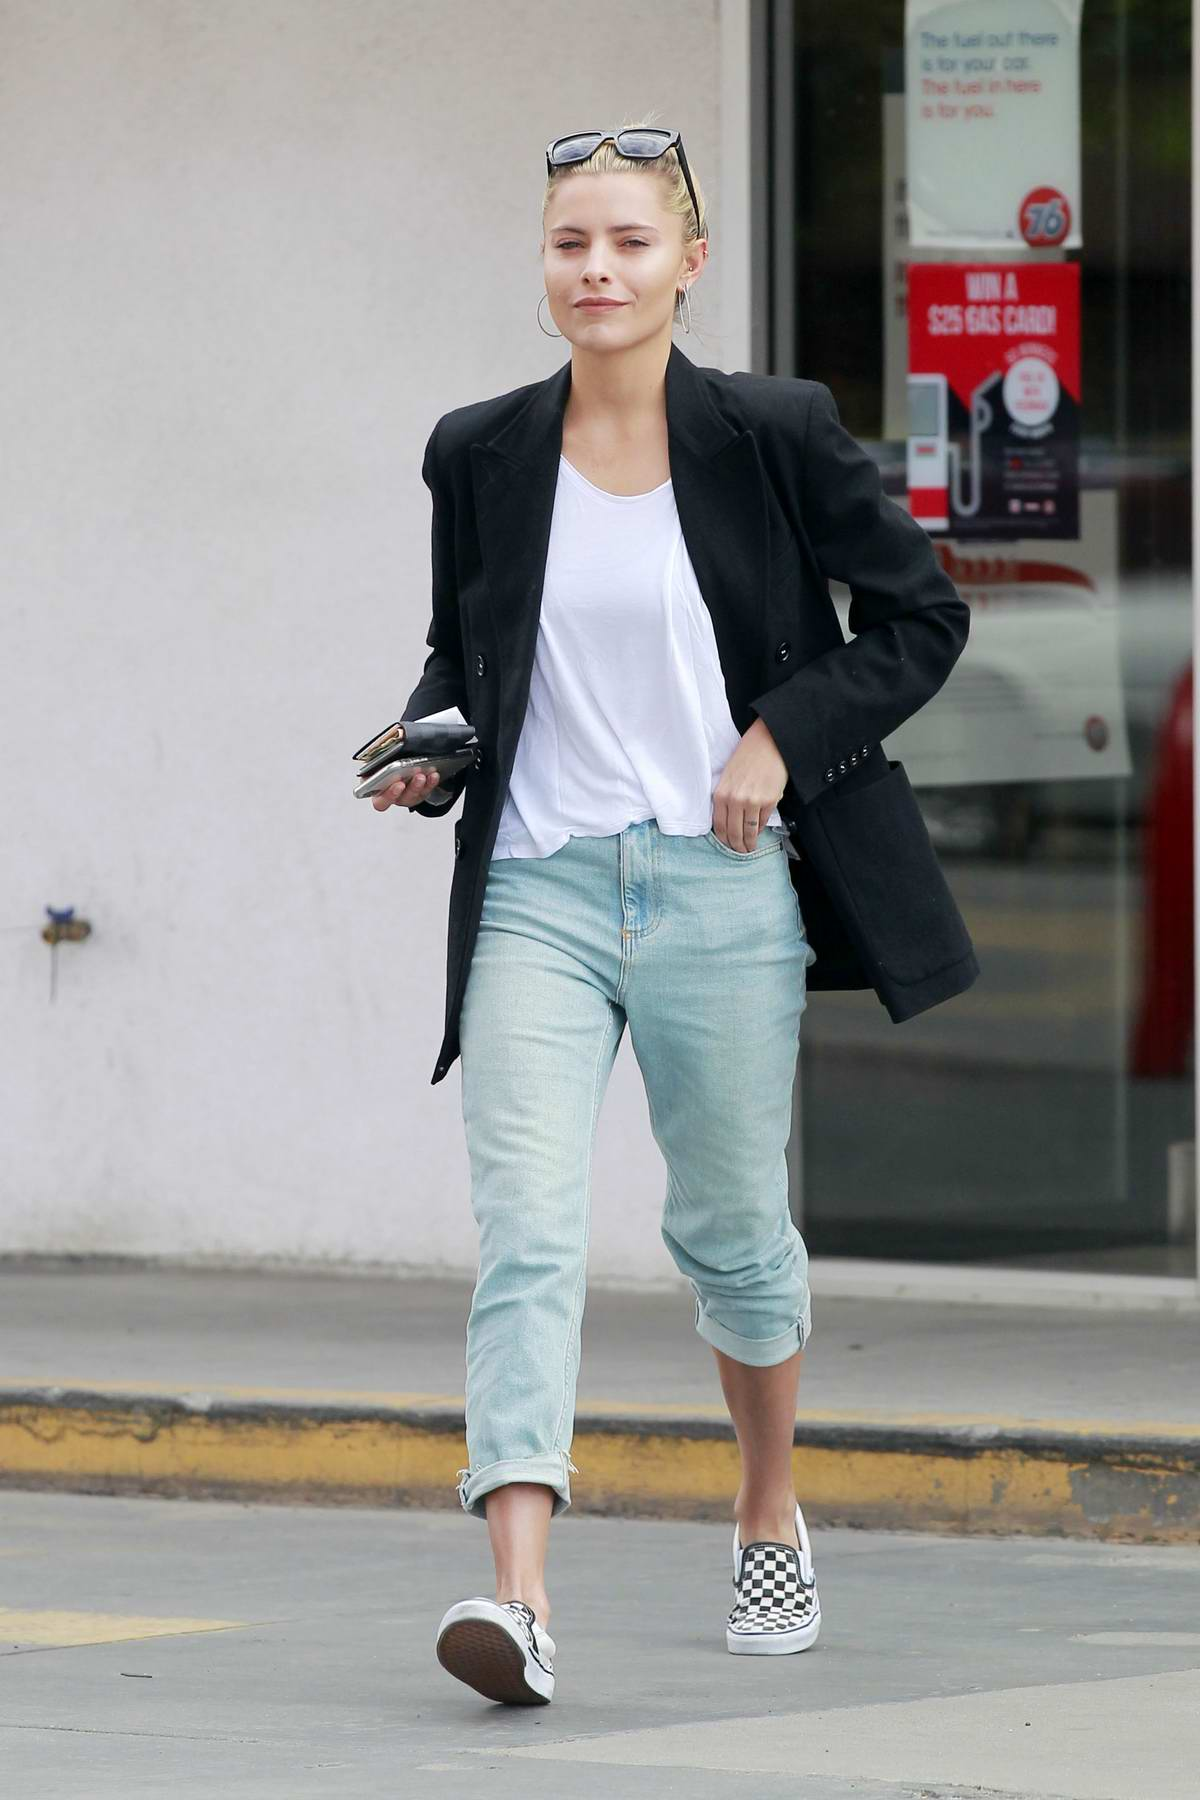 Sophia Thomalla spotted in her Aston Martin as she stop by a gas station in Los Angeles